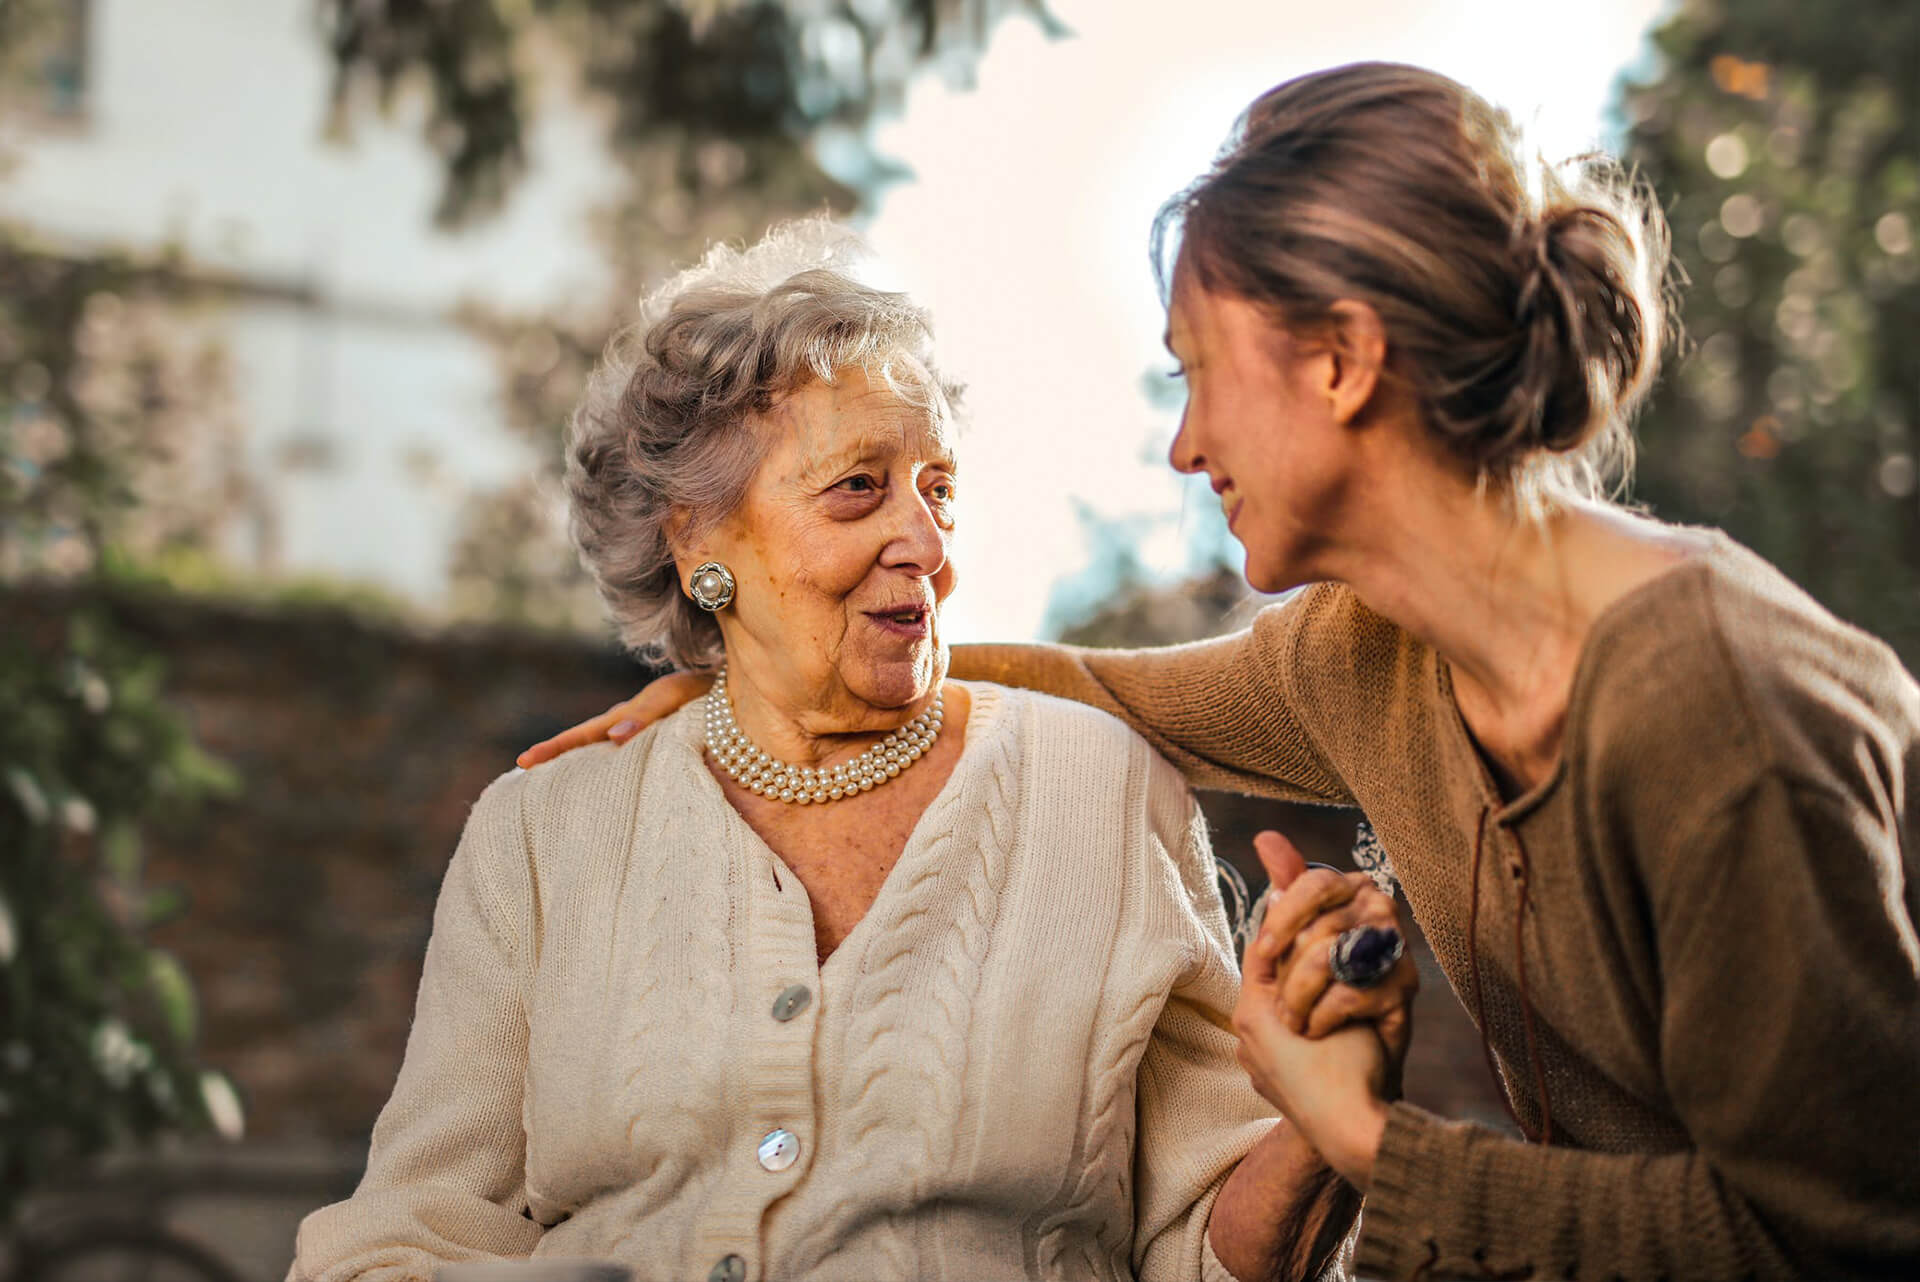 old women and daugther looking at each other in a garden